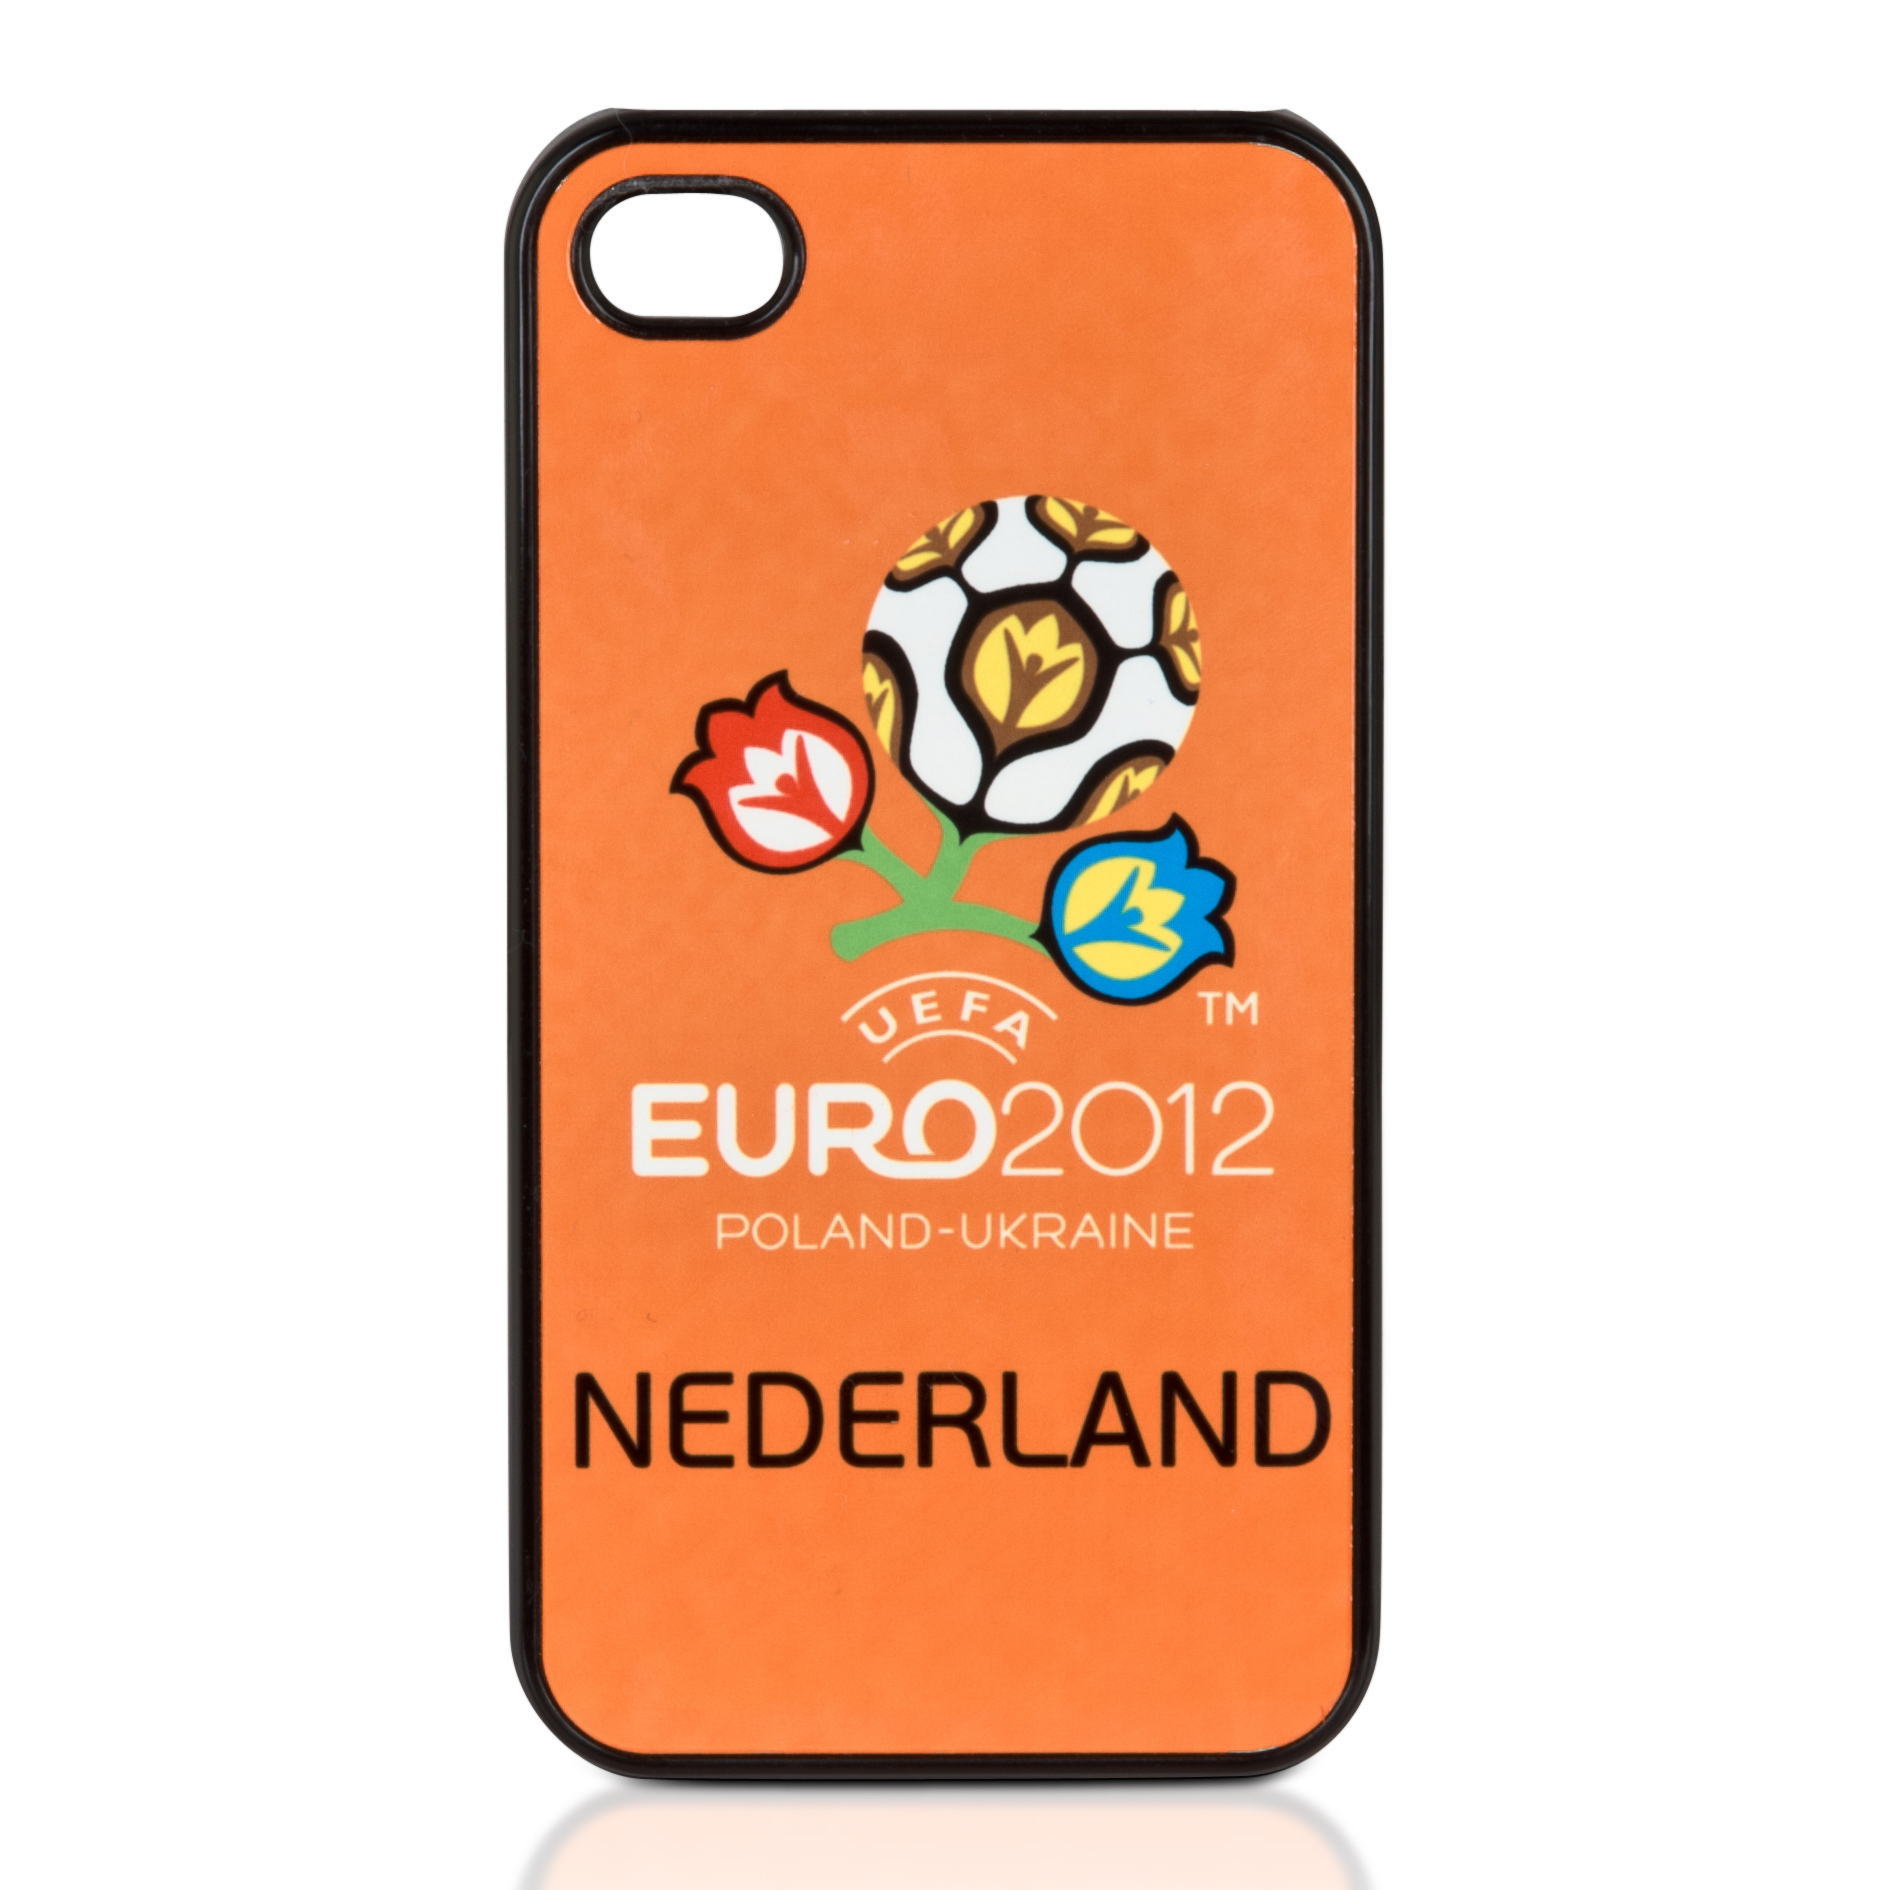 EURO 2012 Country Iphone 4 Cover - Holland